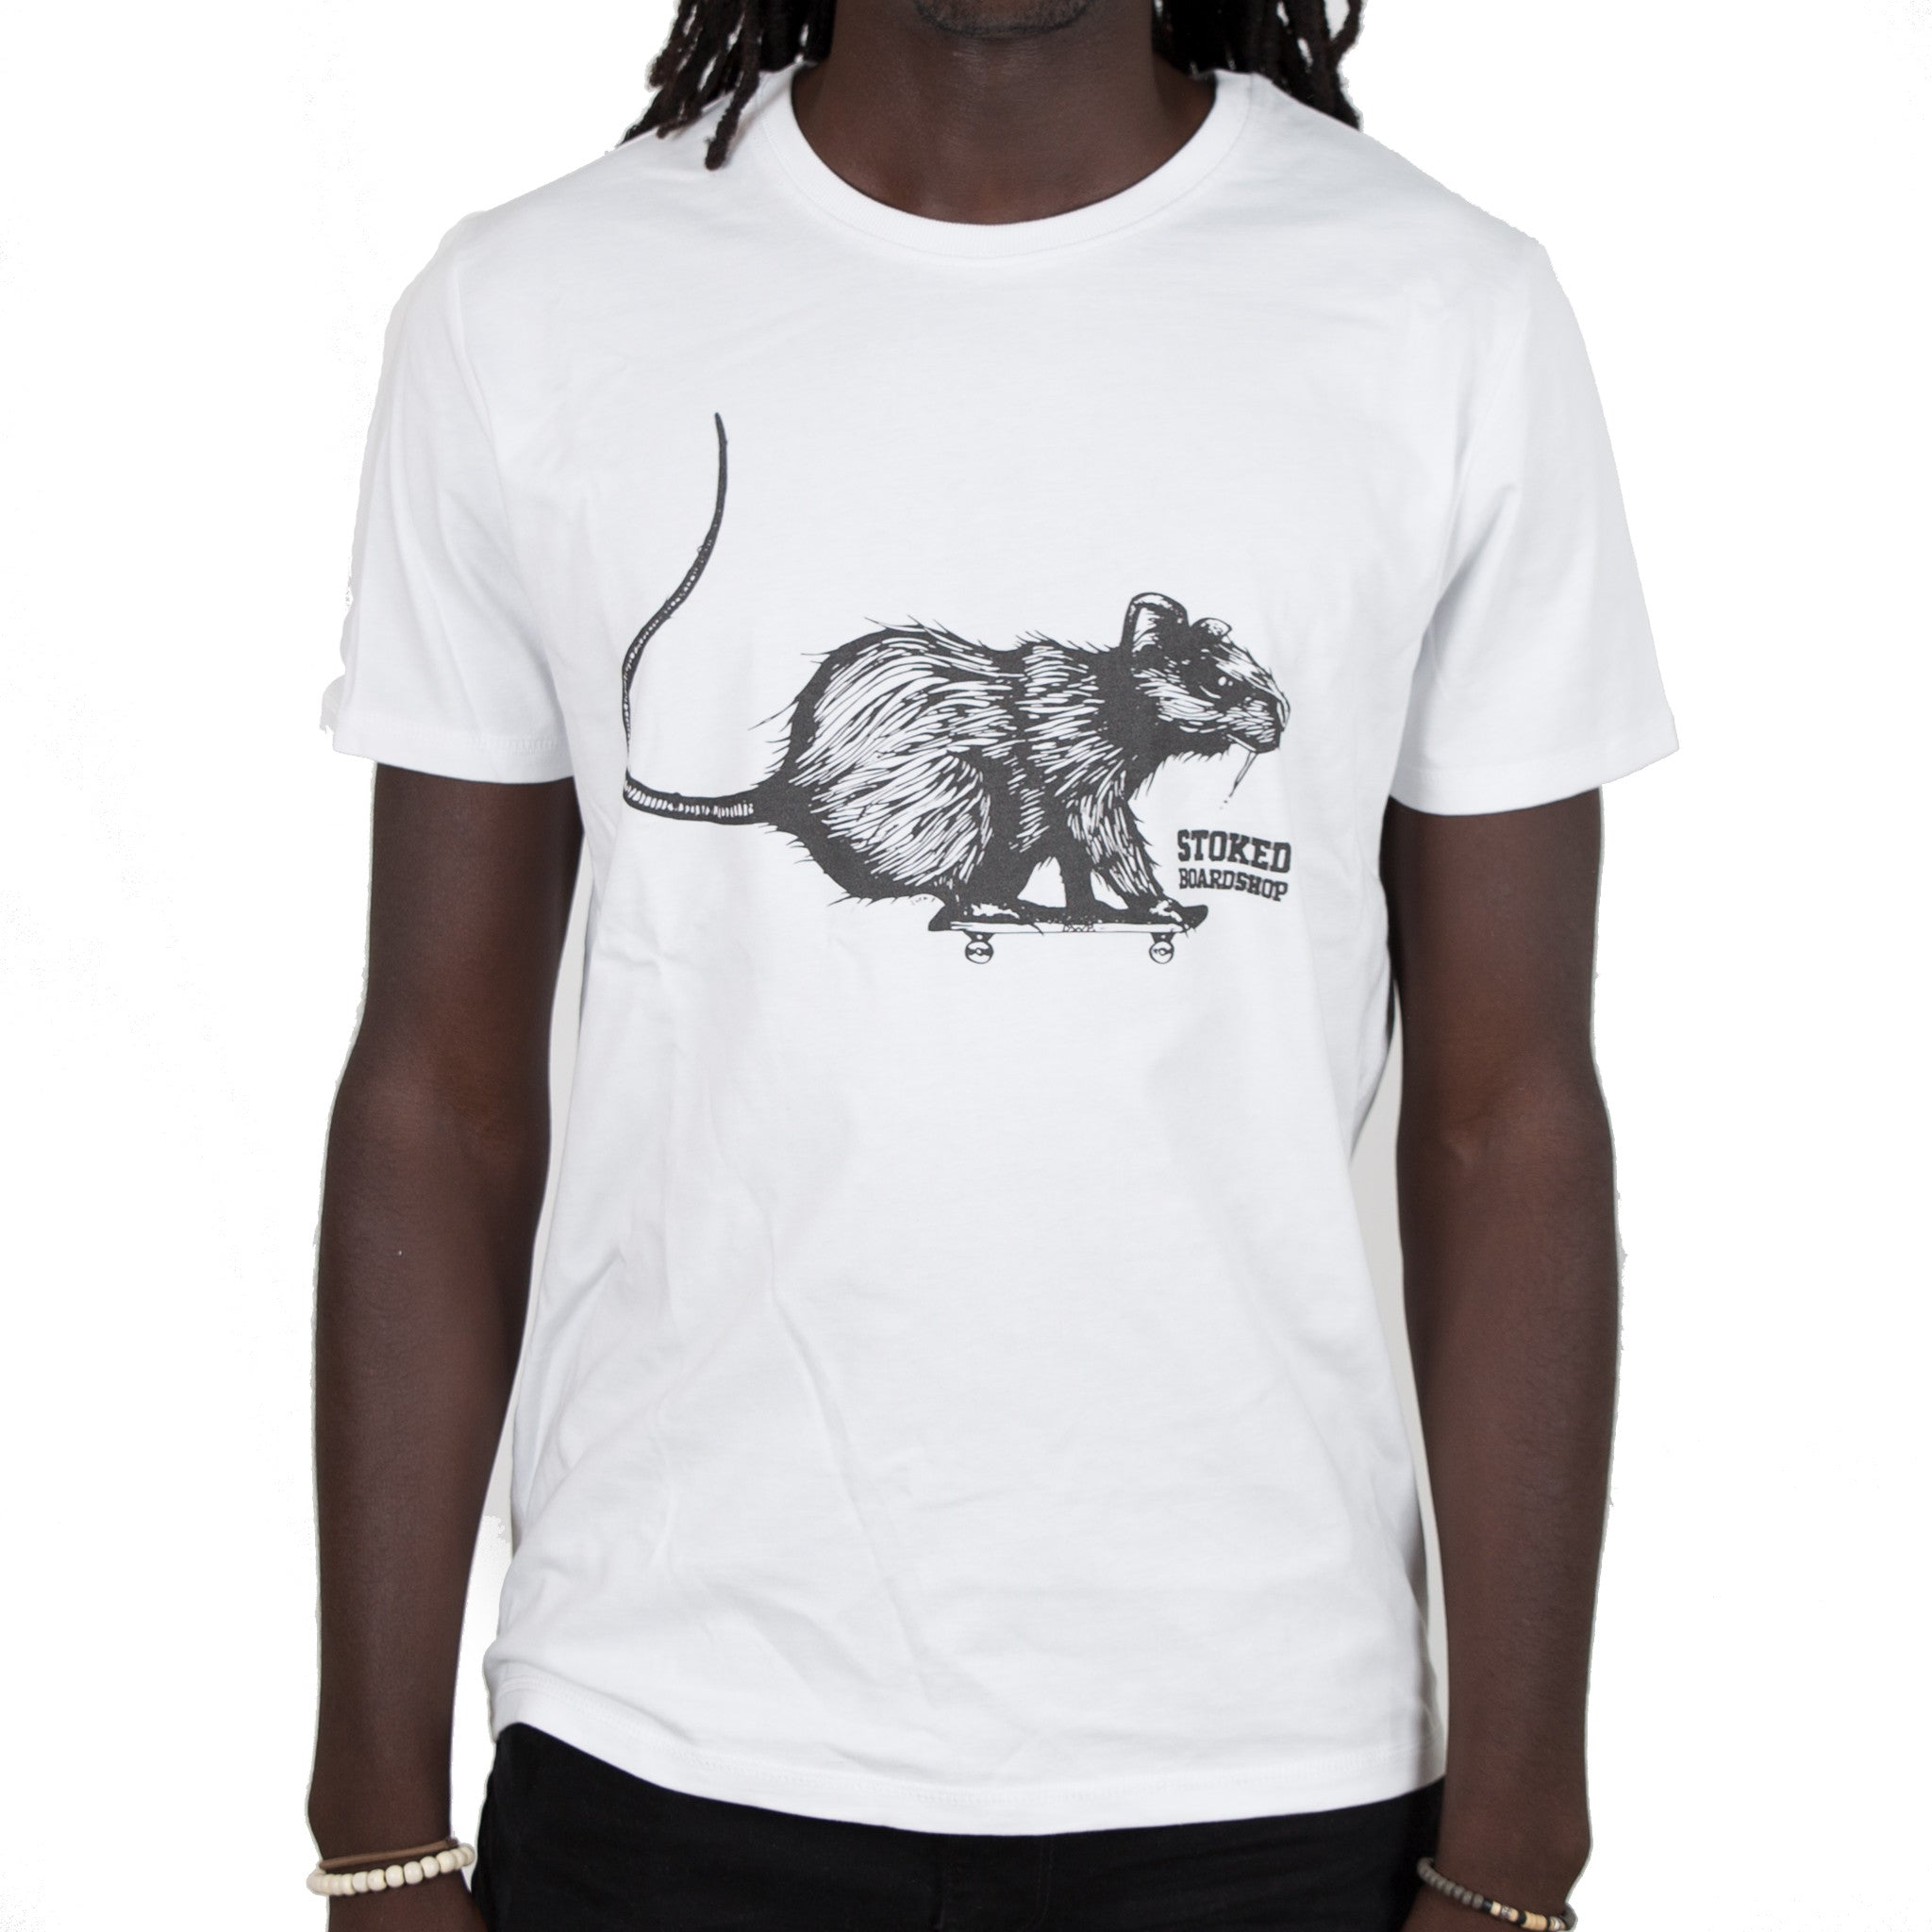 Skate rat Big white t-shirt - Stoked Boardshop  - 1